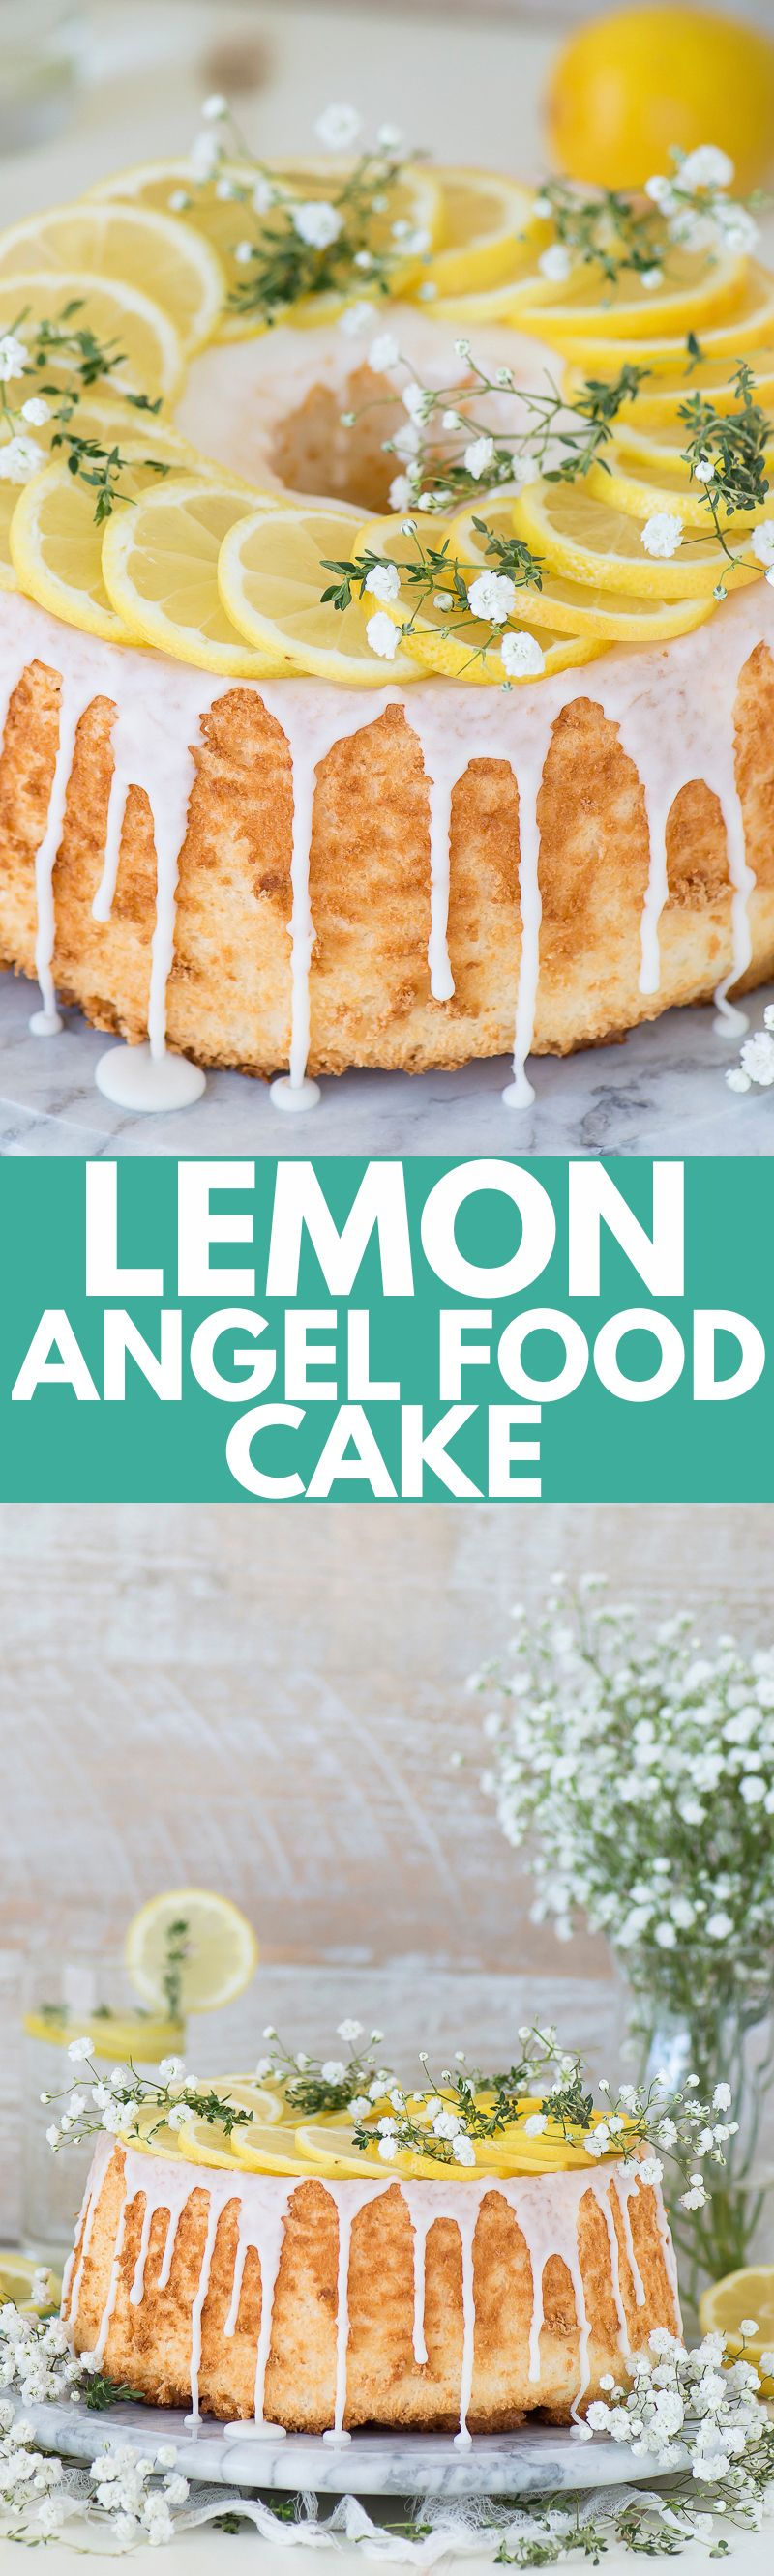 Easy And Rustic Lemon Angel Food Cake That Begins With A